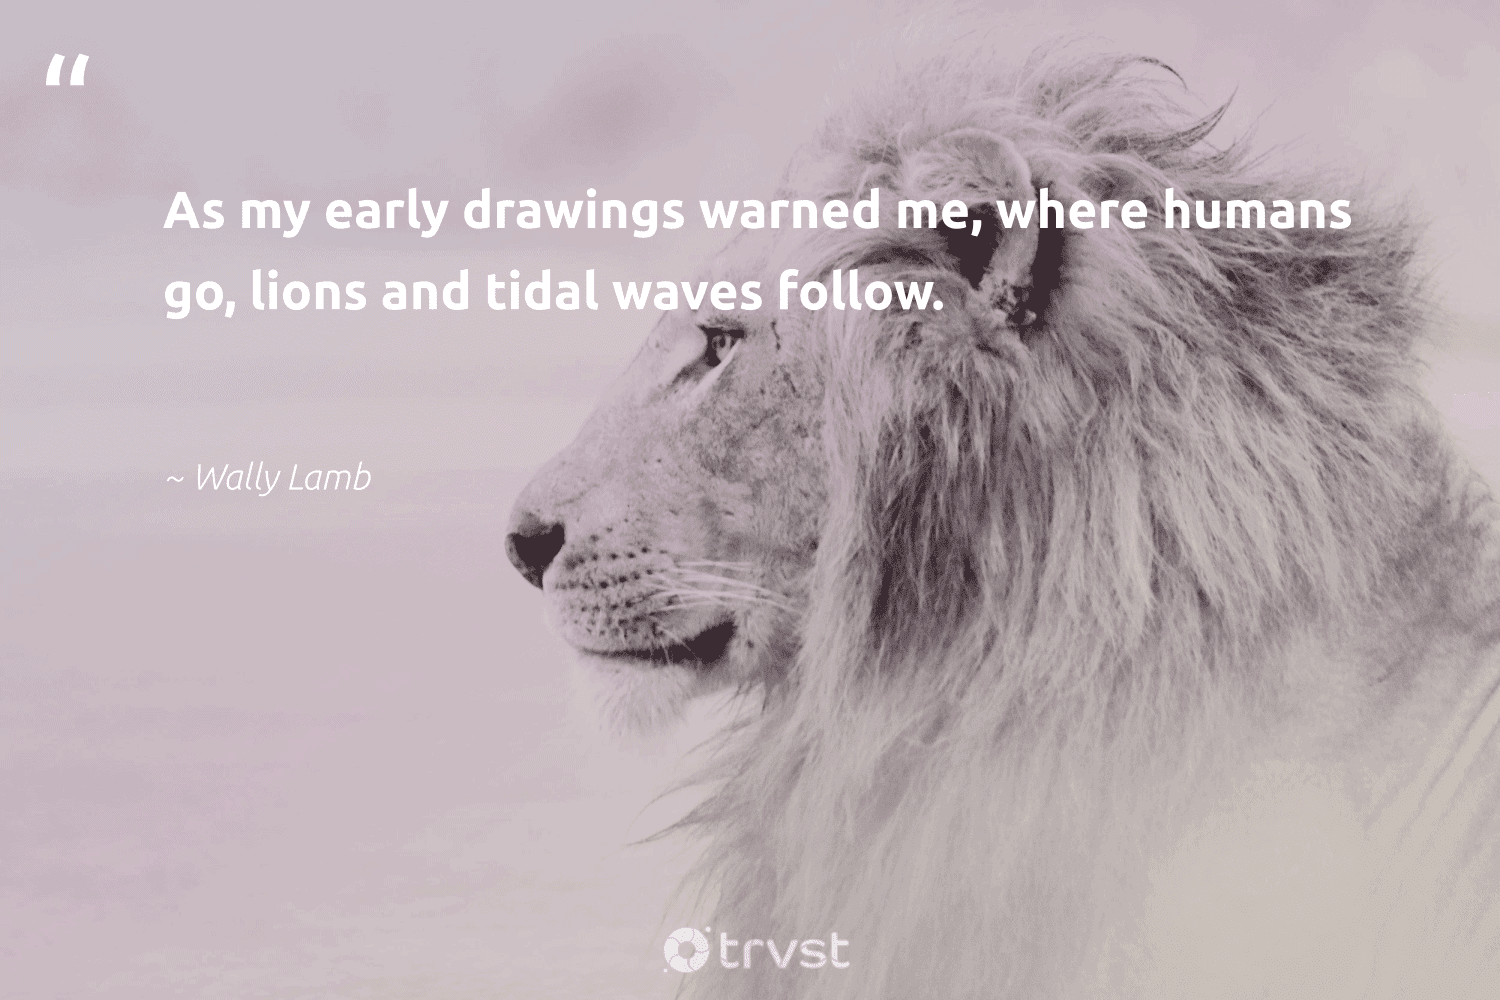 """""""As my early drawings warned me, where humans go, lions and tidal waves follow.""""  - Wally Lamb #trvst #quotes #waves #lions #bigcats #socialchange #protectnature #bethechange #sustainability #collectiveaction #perfectnature #socialimpact"""